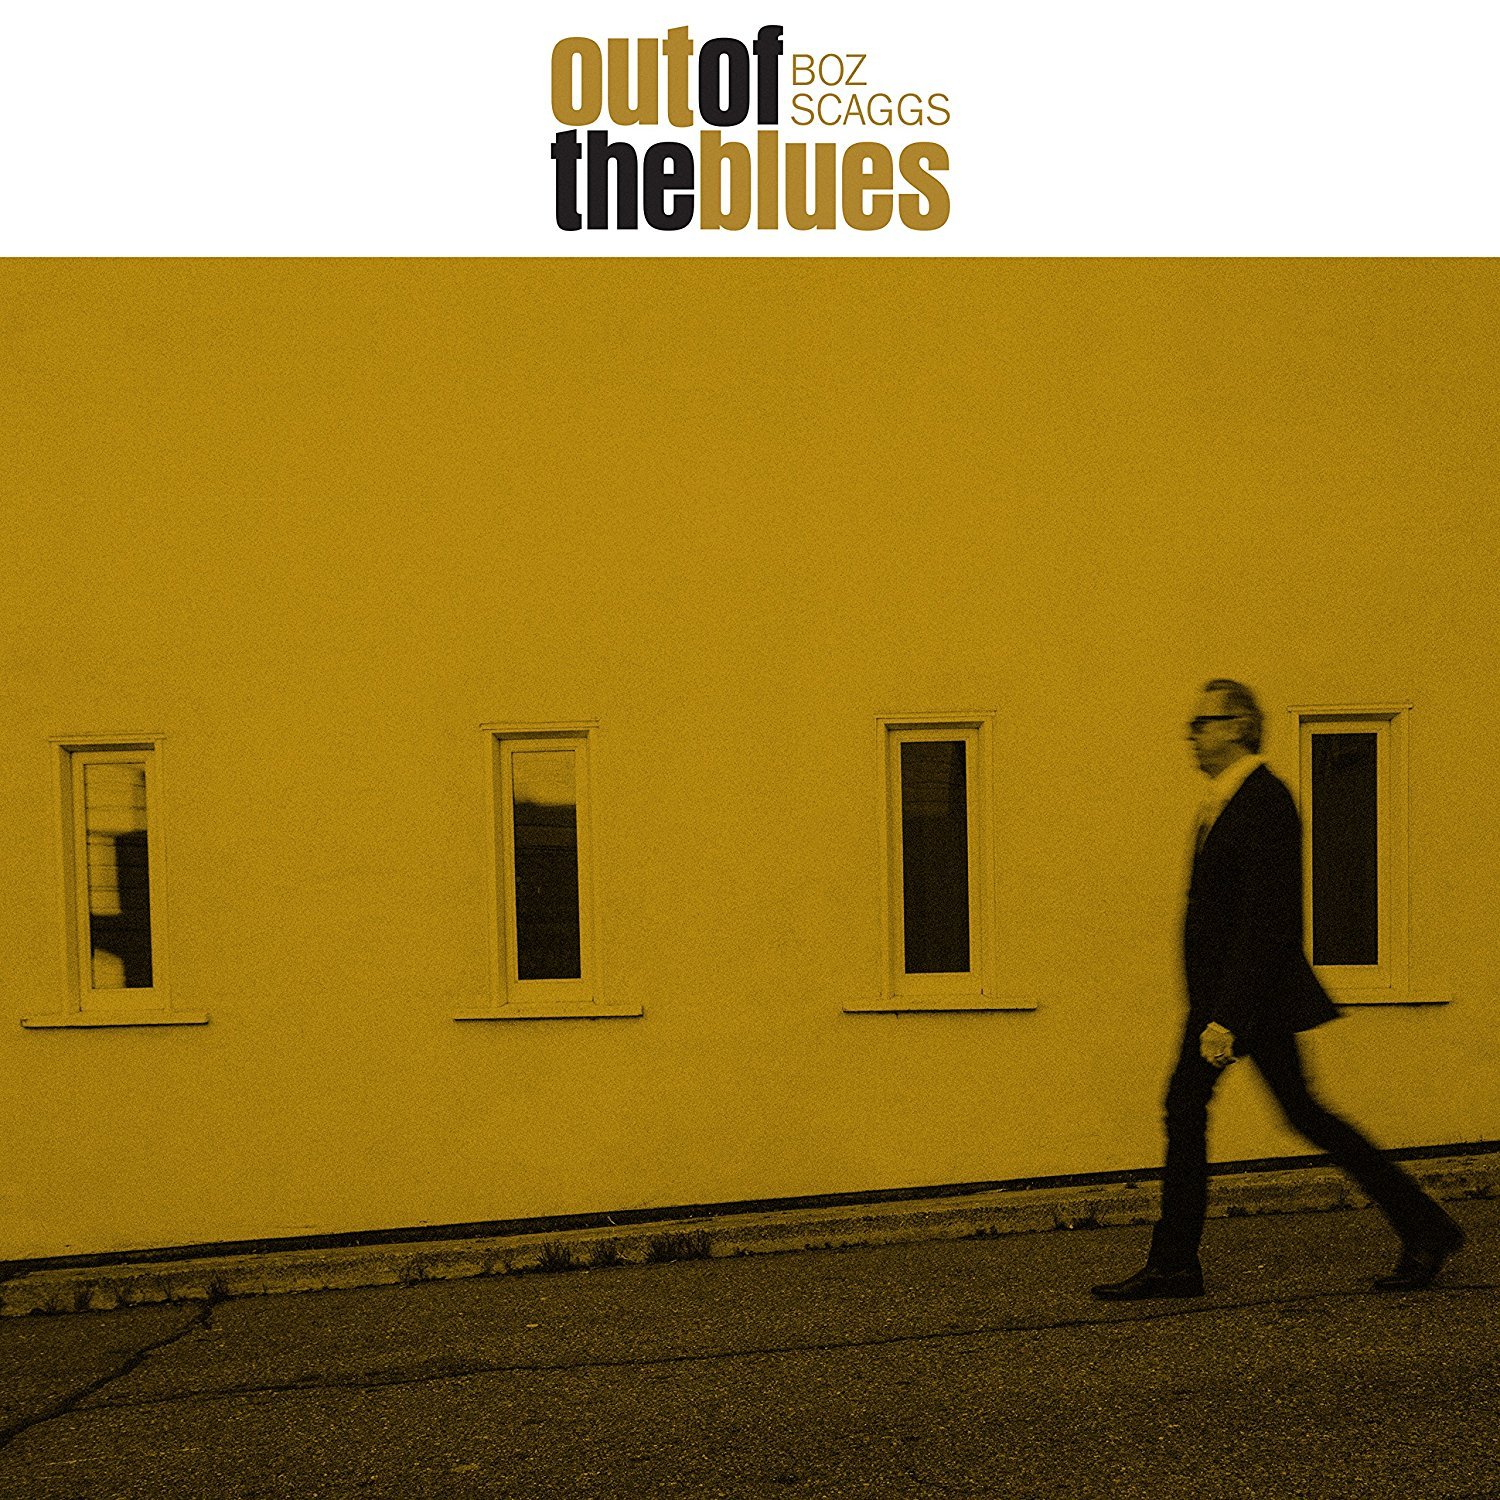 Boz Scaggs - Out Of The Blues (Bonus Tracks) (Shm) (Jpn)